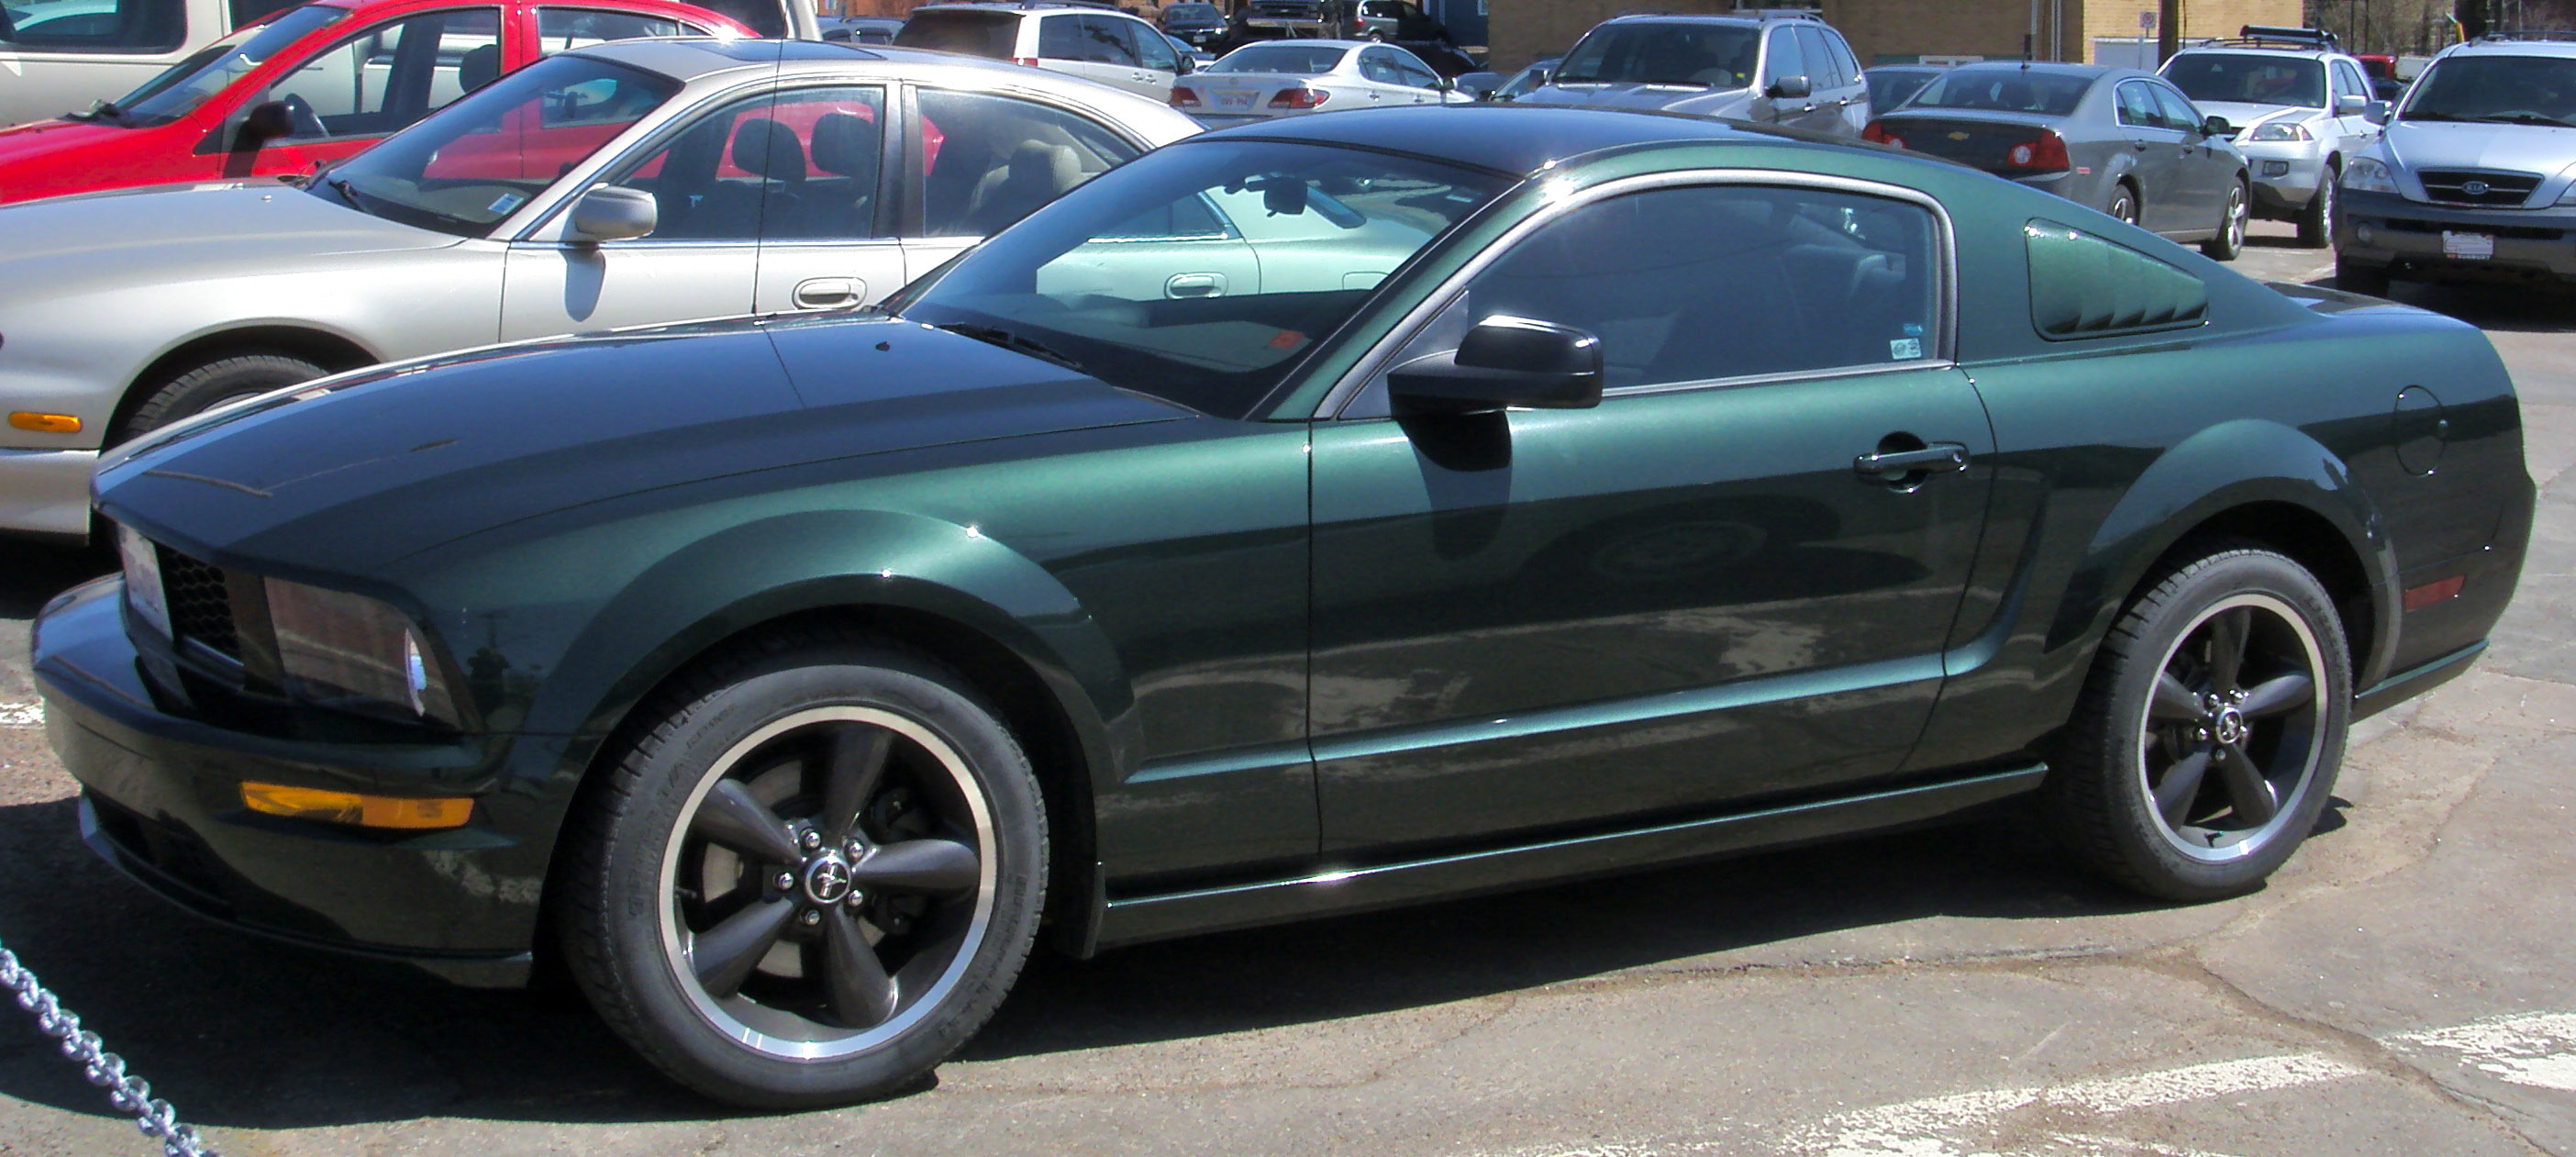 1000 ideas about ford mustang bullitt on pinterest 2001. Black Bedroom Furniture Sets. Home Design Ideas